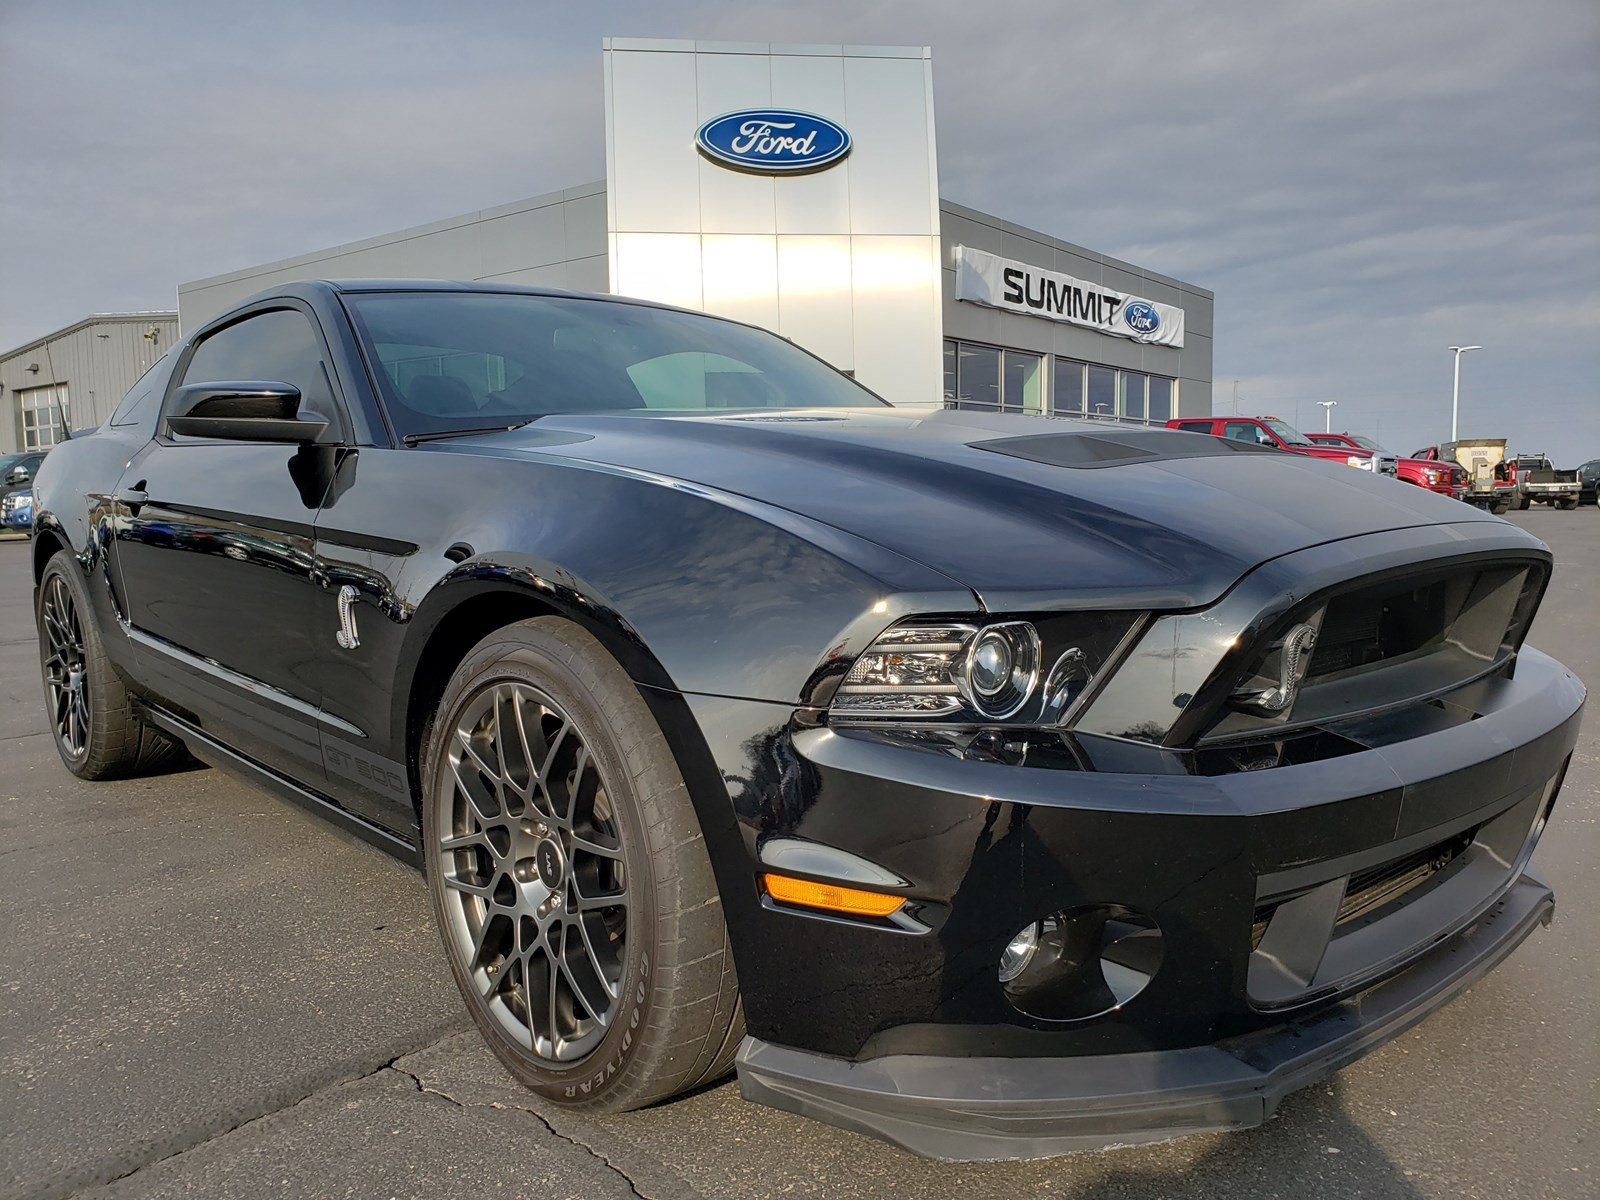 Used 2013 ford mustang for sale at summit automotive vin 1zvbp8jz3d5261404